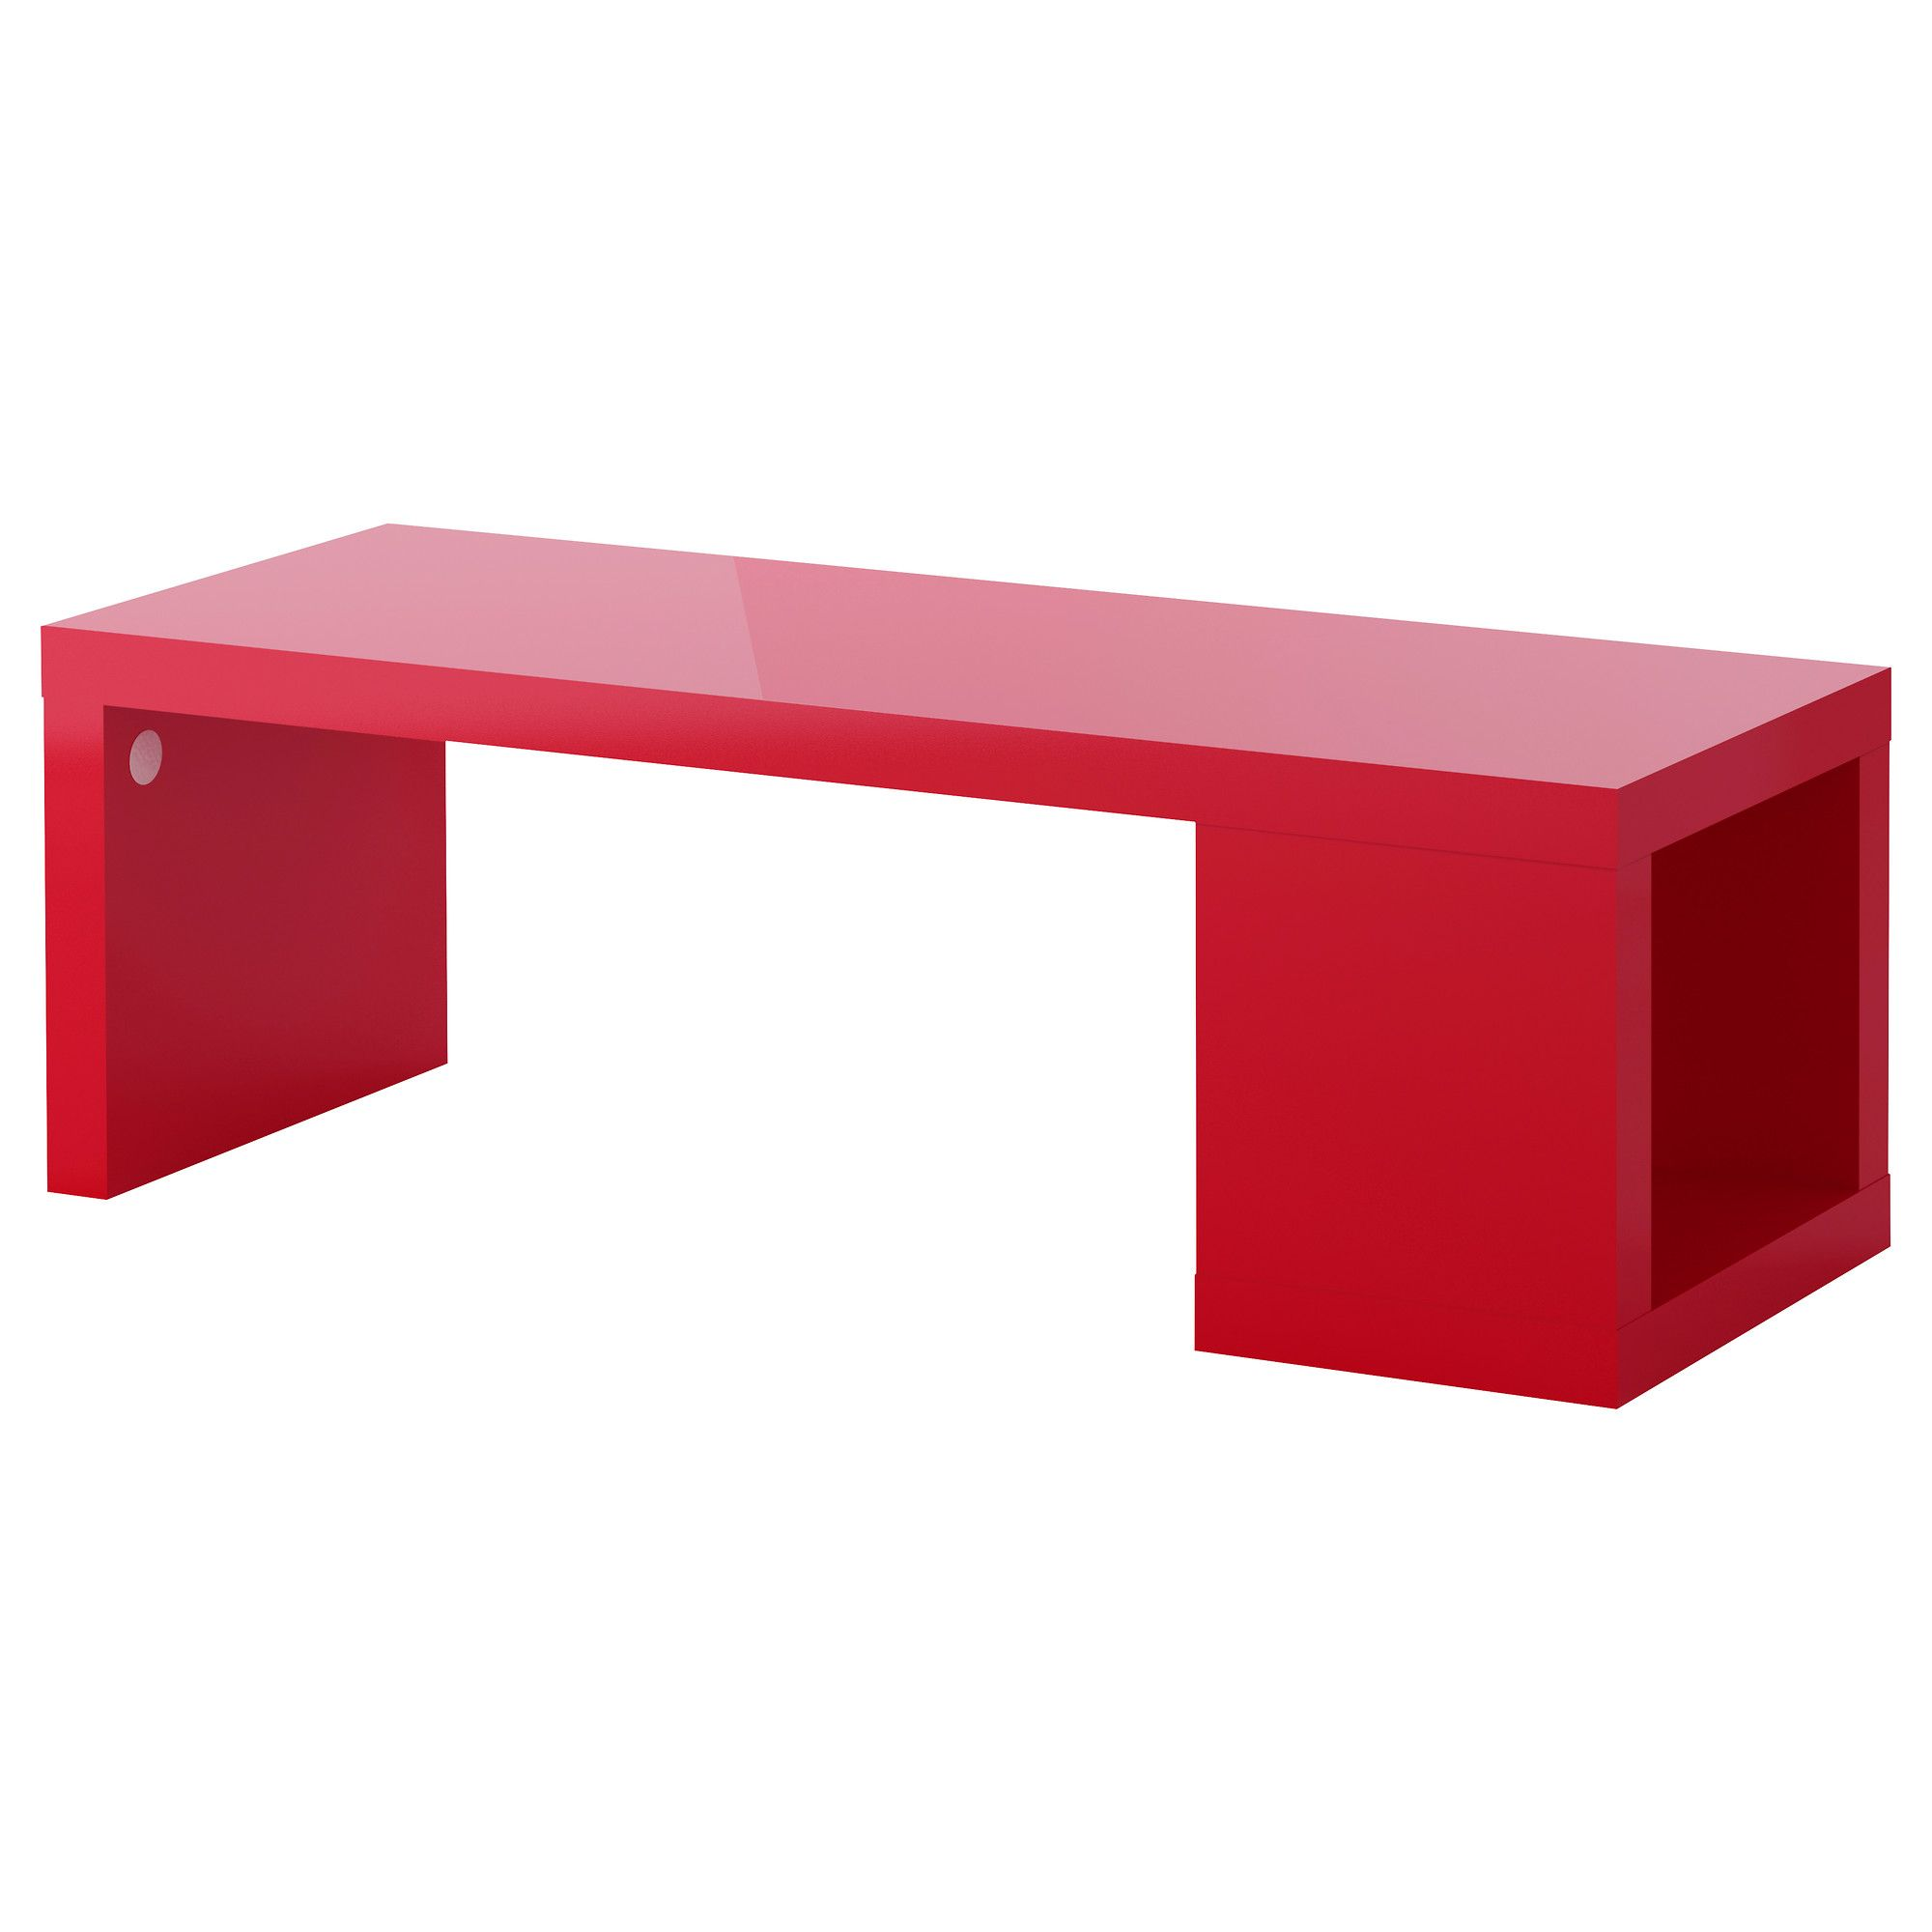 Bon LACK Coffee Table   High Gloss Red   IKEA This Would Be An Accent To The  Lobby Of The Commercial Space, Red Is Great But May Be Jarring.